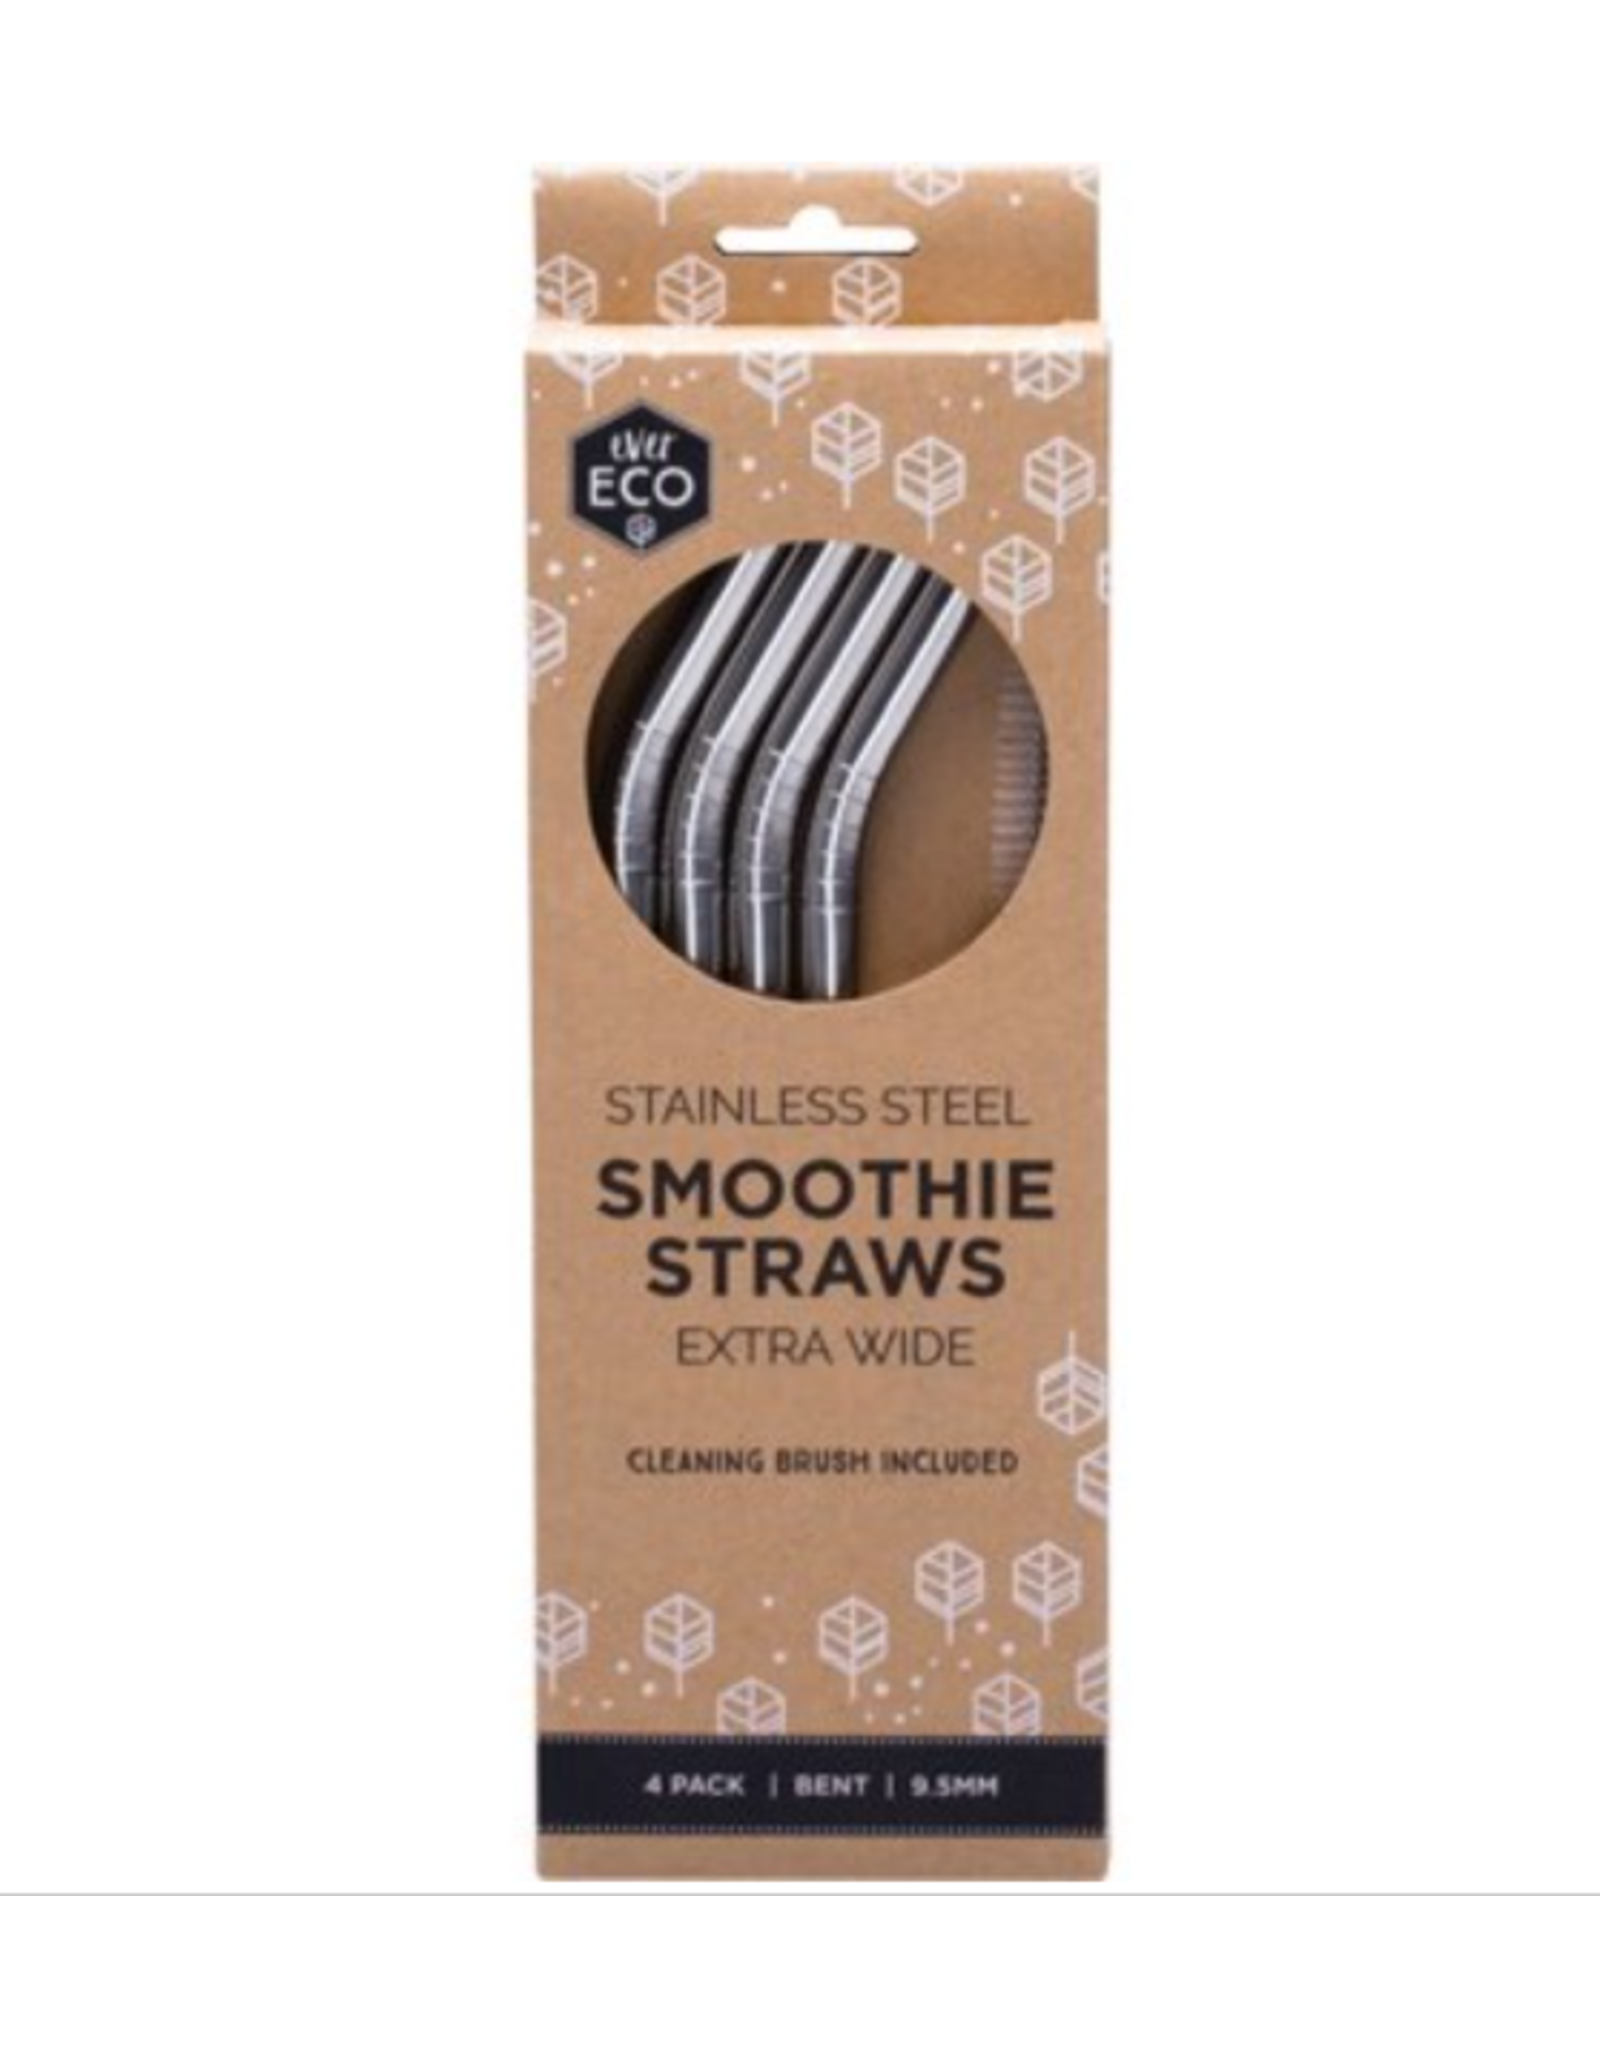 Ever Eco Stainless Steel Smoothie Straws 4 Pack